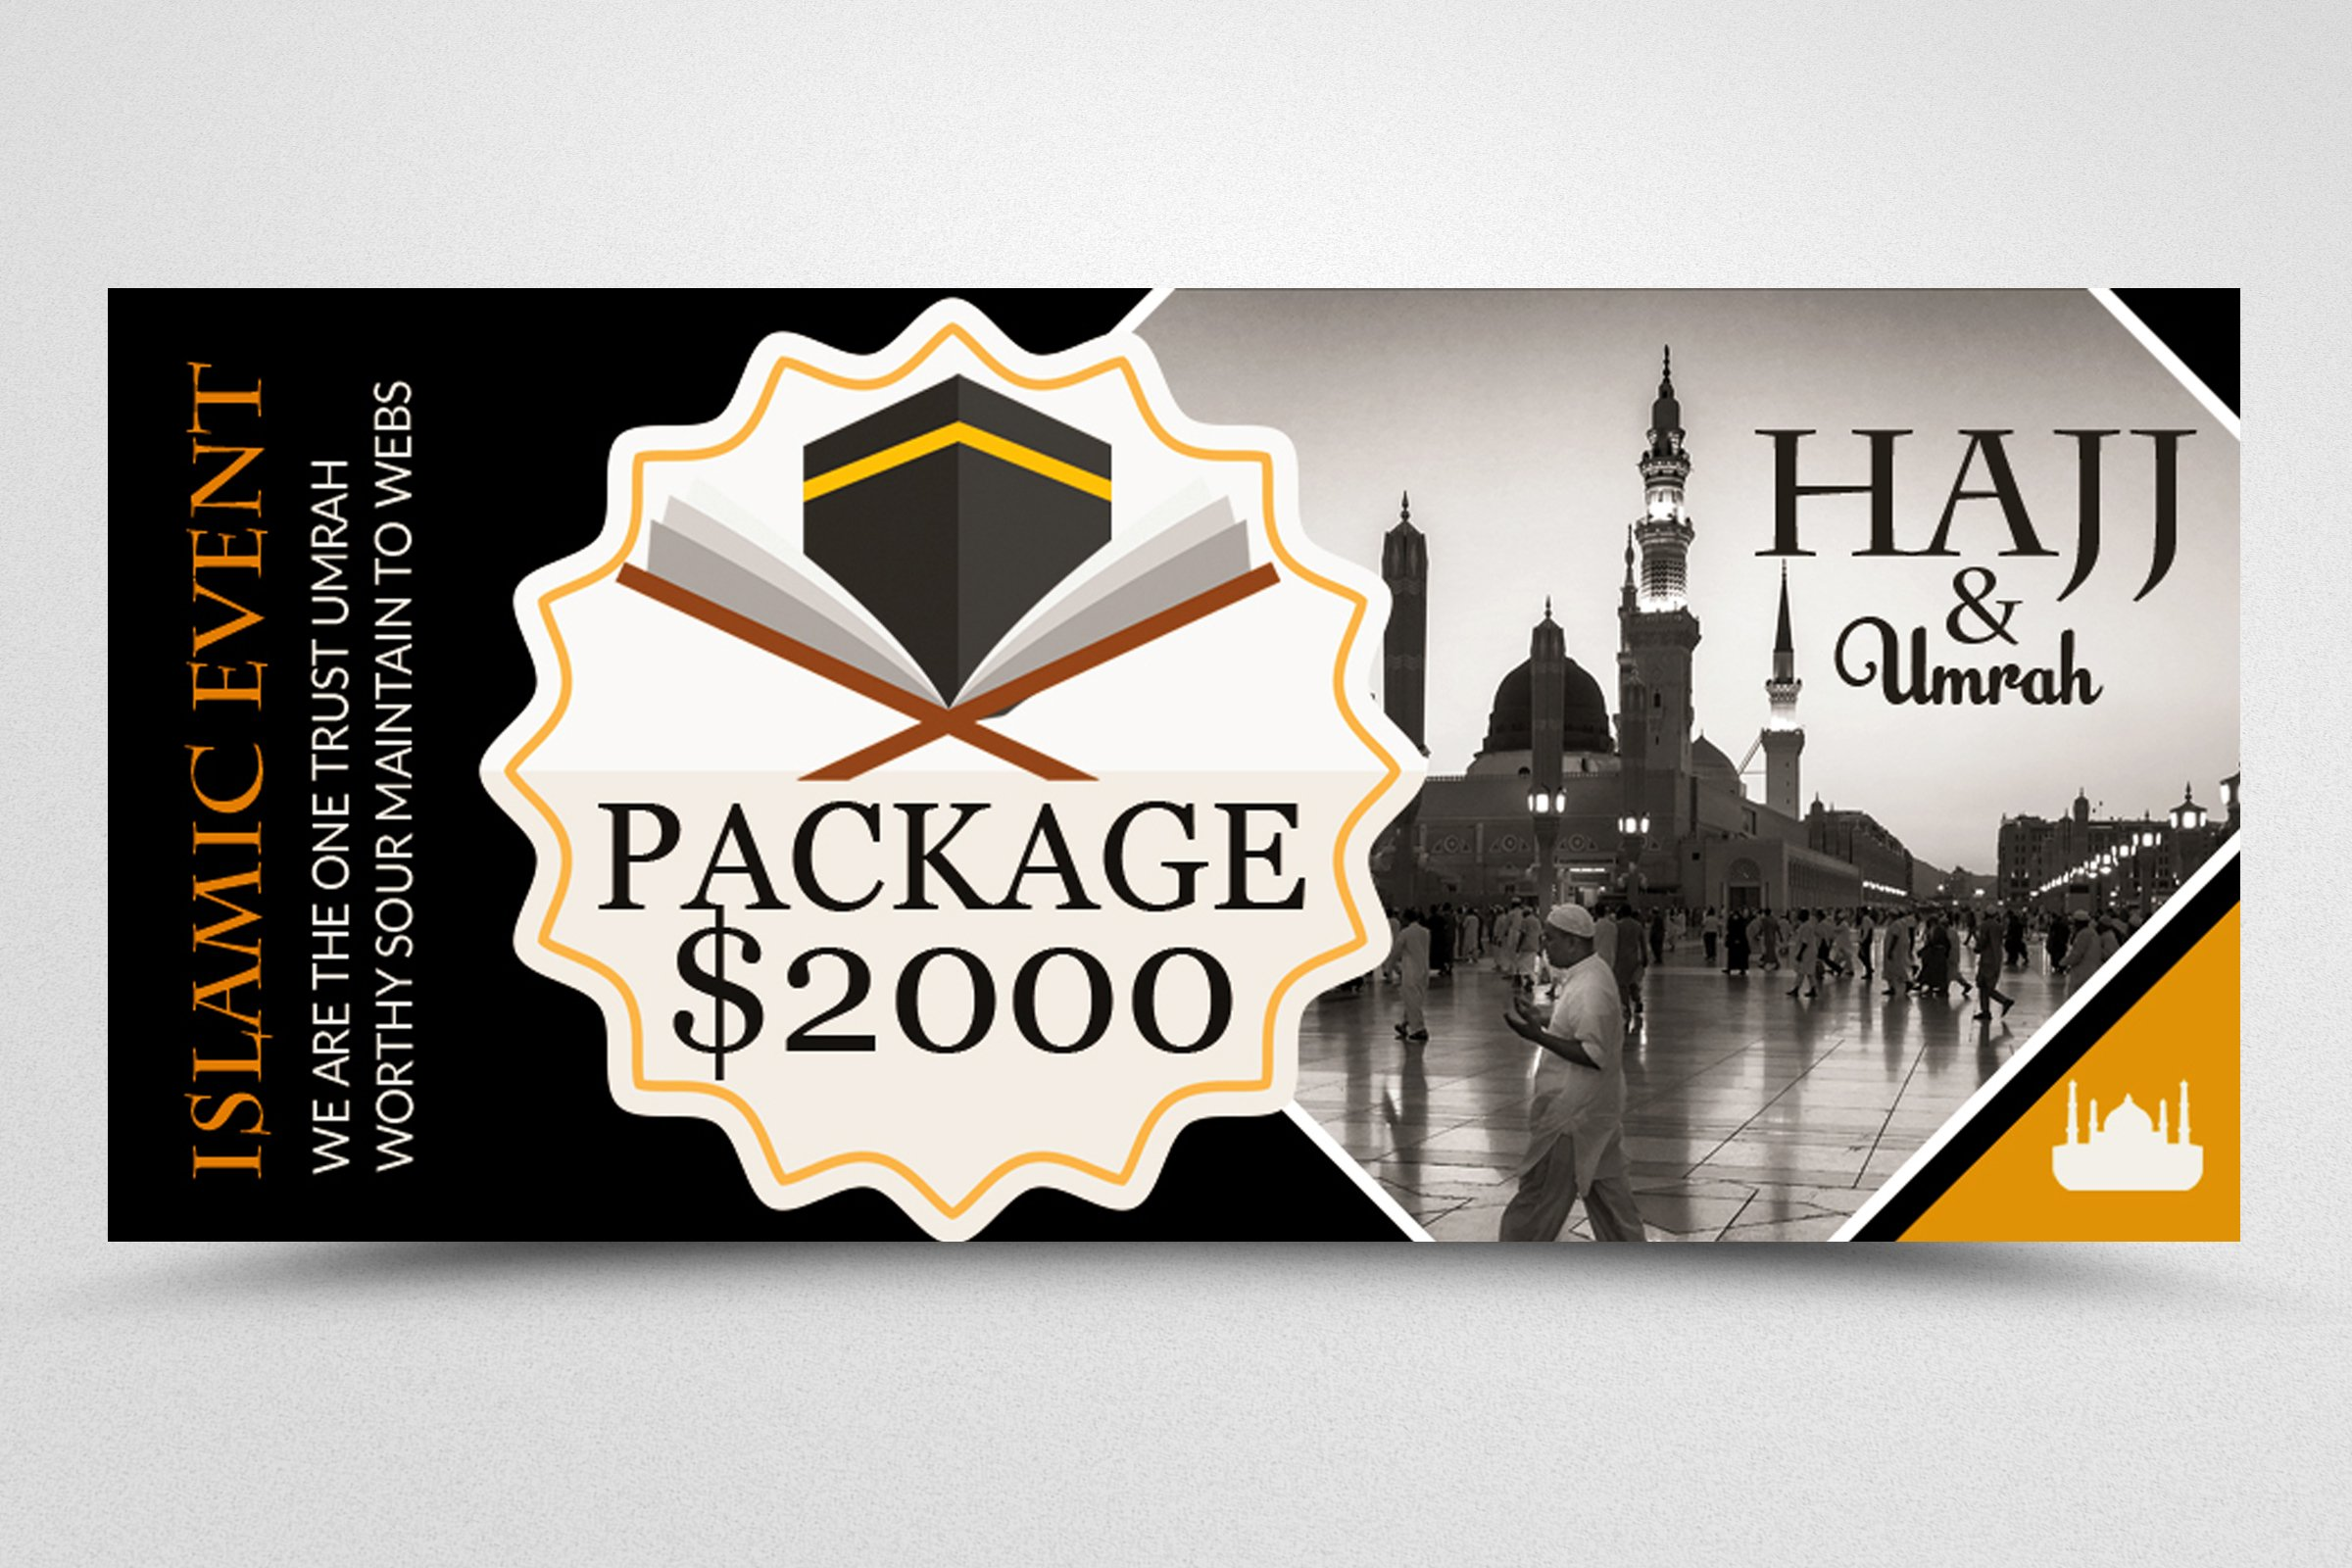 Hajj & Umrah Packages Facebook Banner example image 3